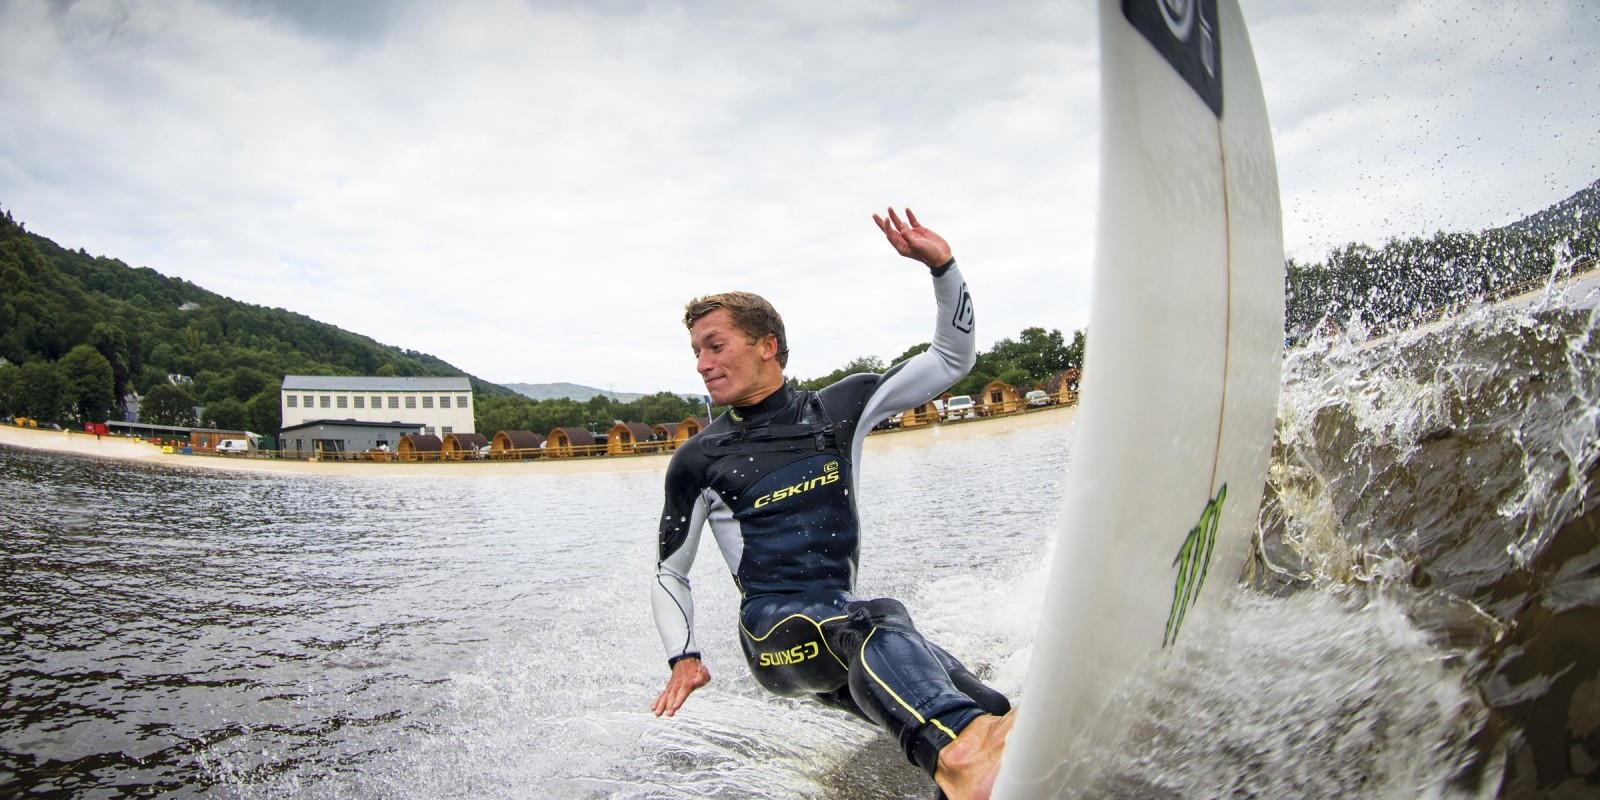 Jobe Harriss wIns competition in Surf Snowdonia